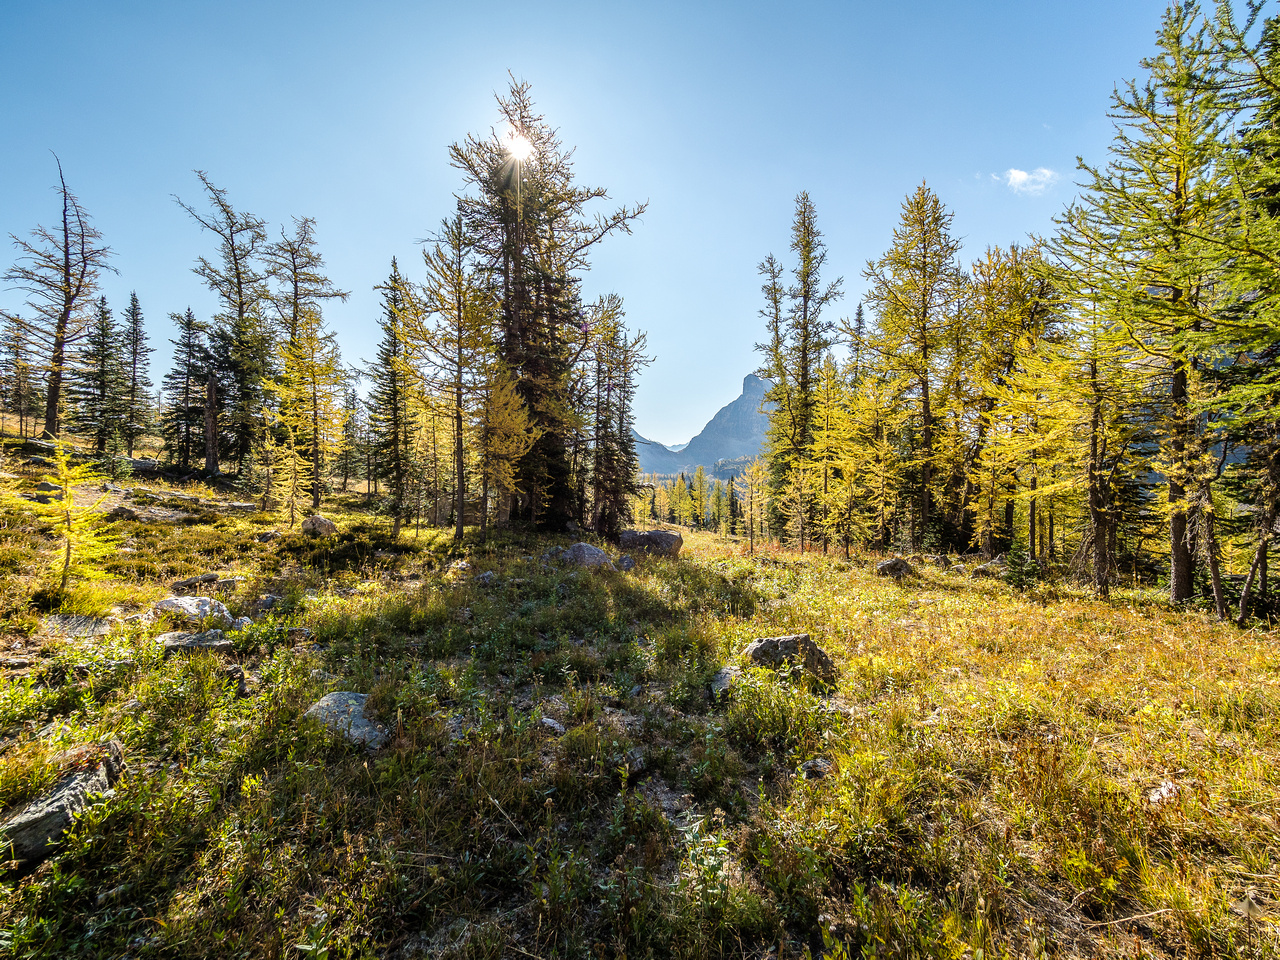 Most of the larches in the upper valley under Pharaoh Peaks were cooperative with the fall theme, unlike their lower elevation cousins.